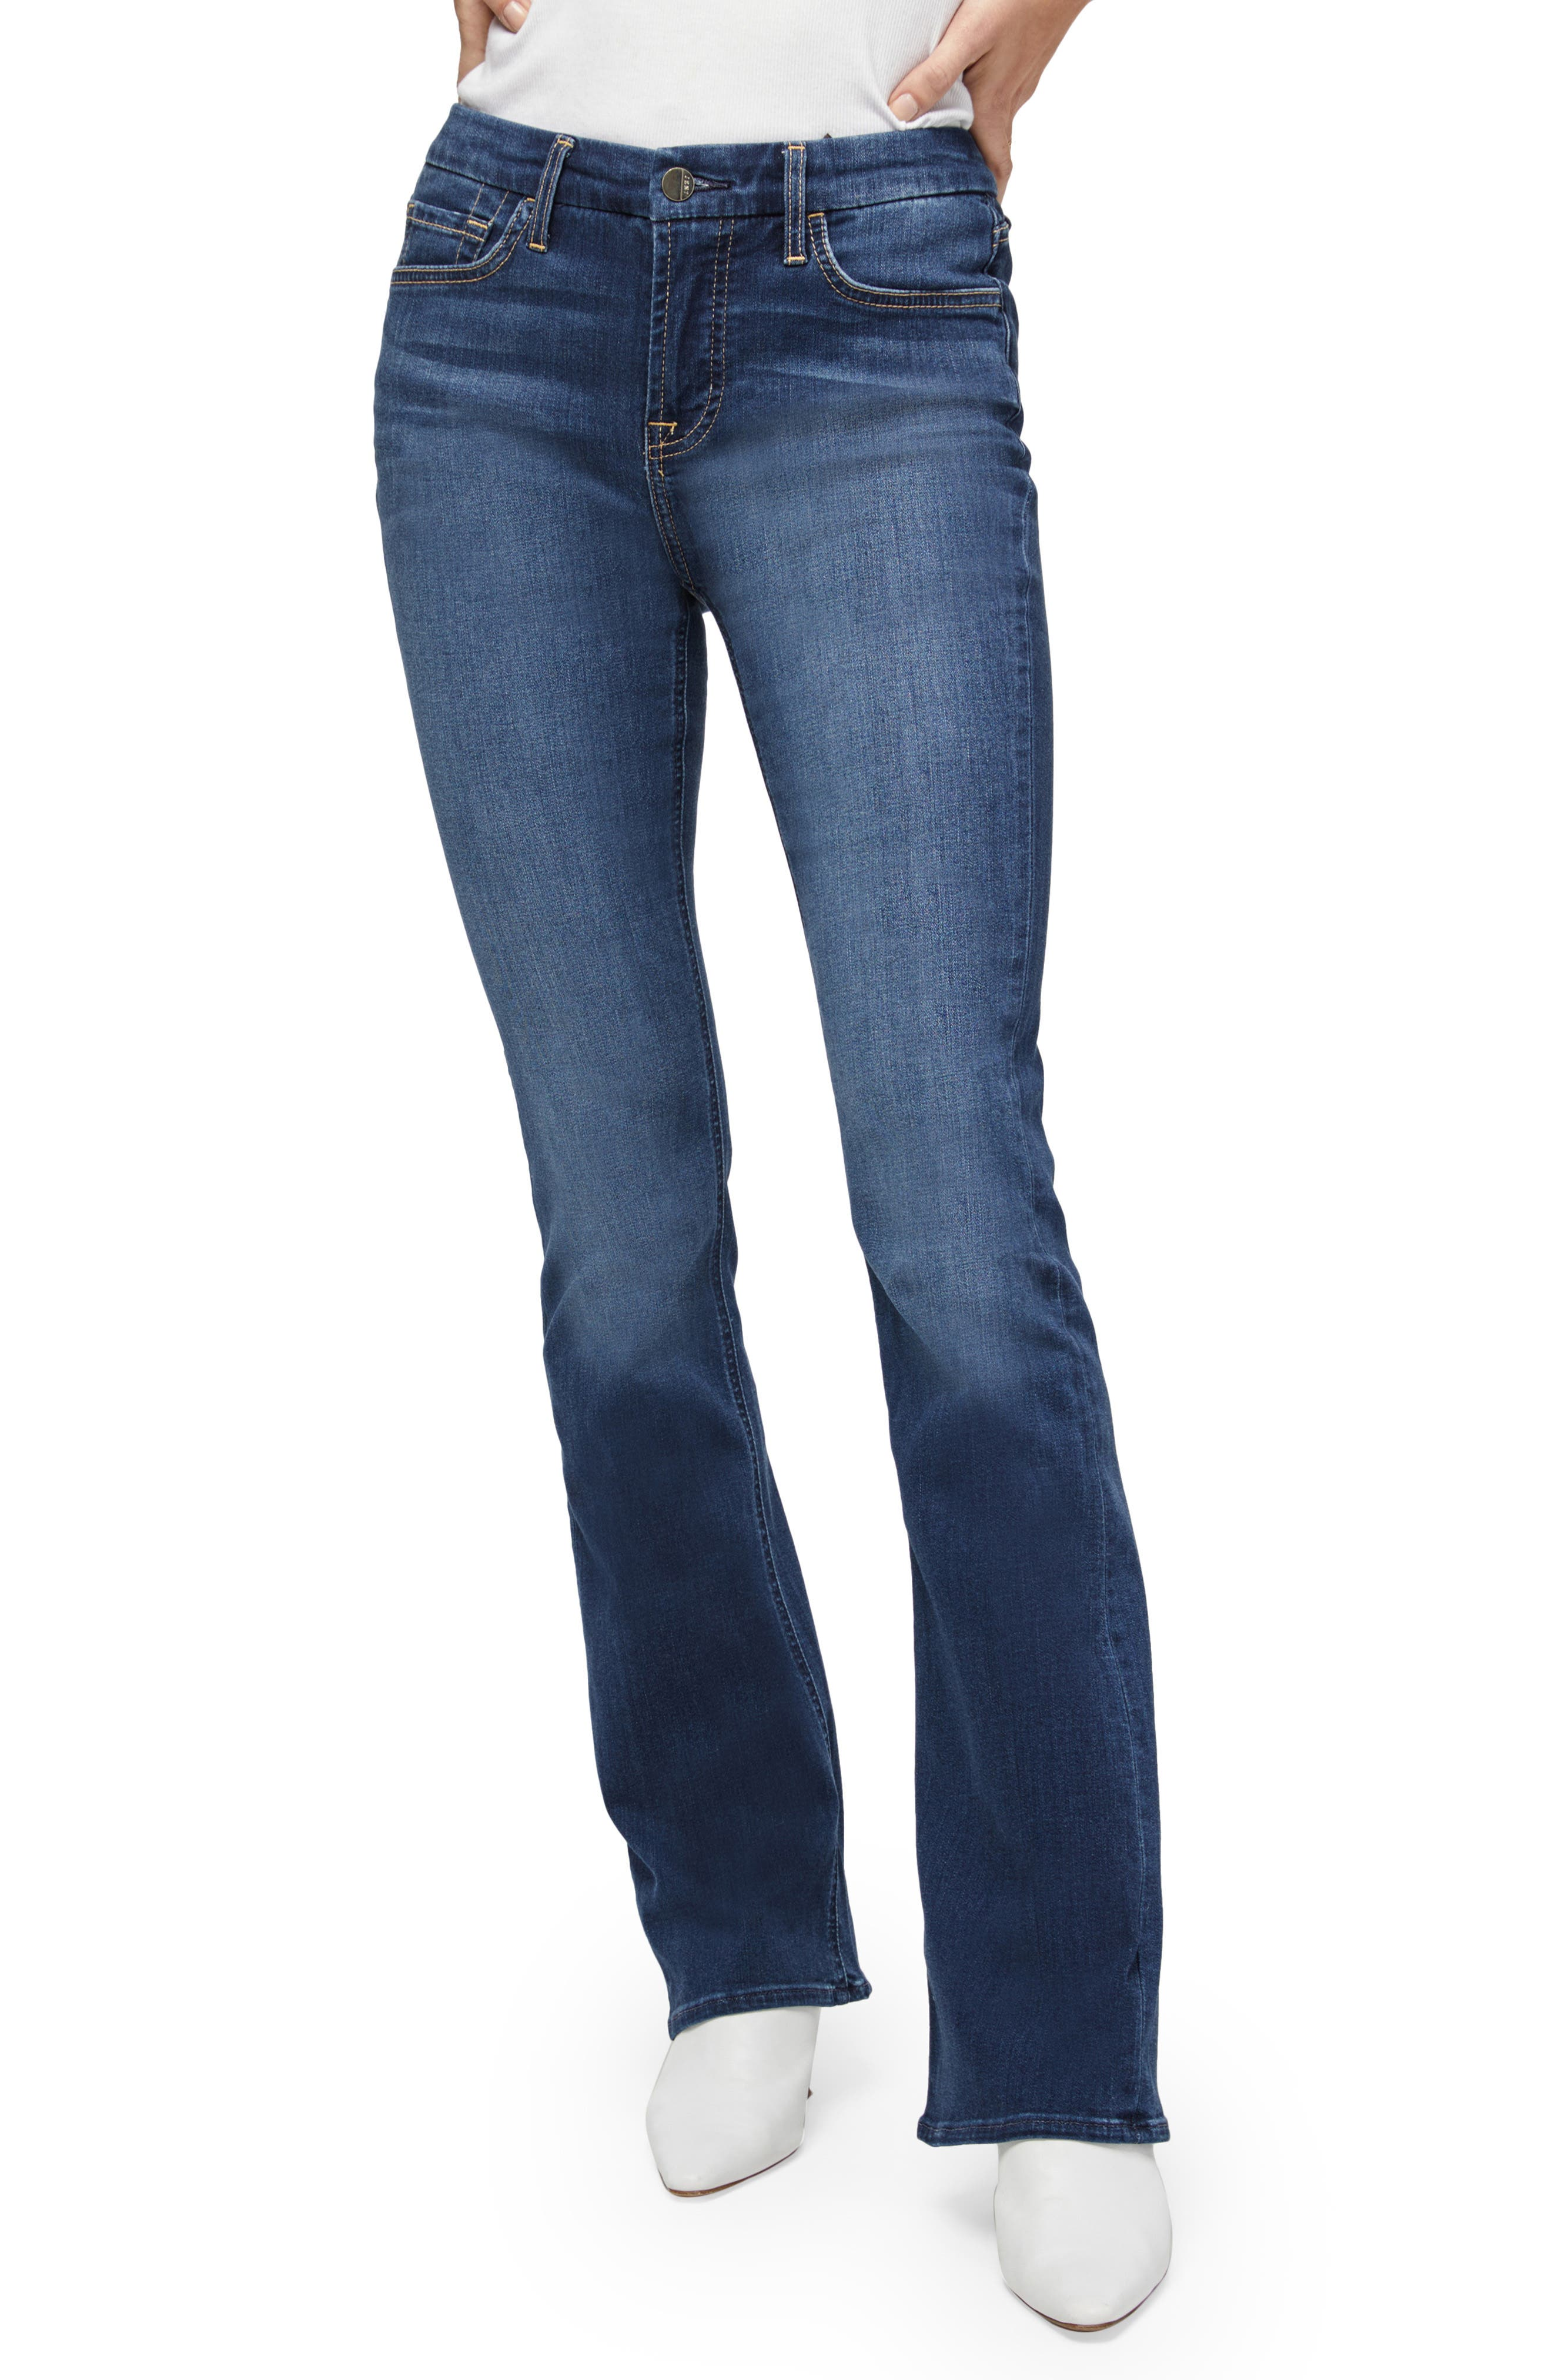 By 7 For All Mankind Slim Bootcut Jeans